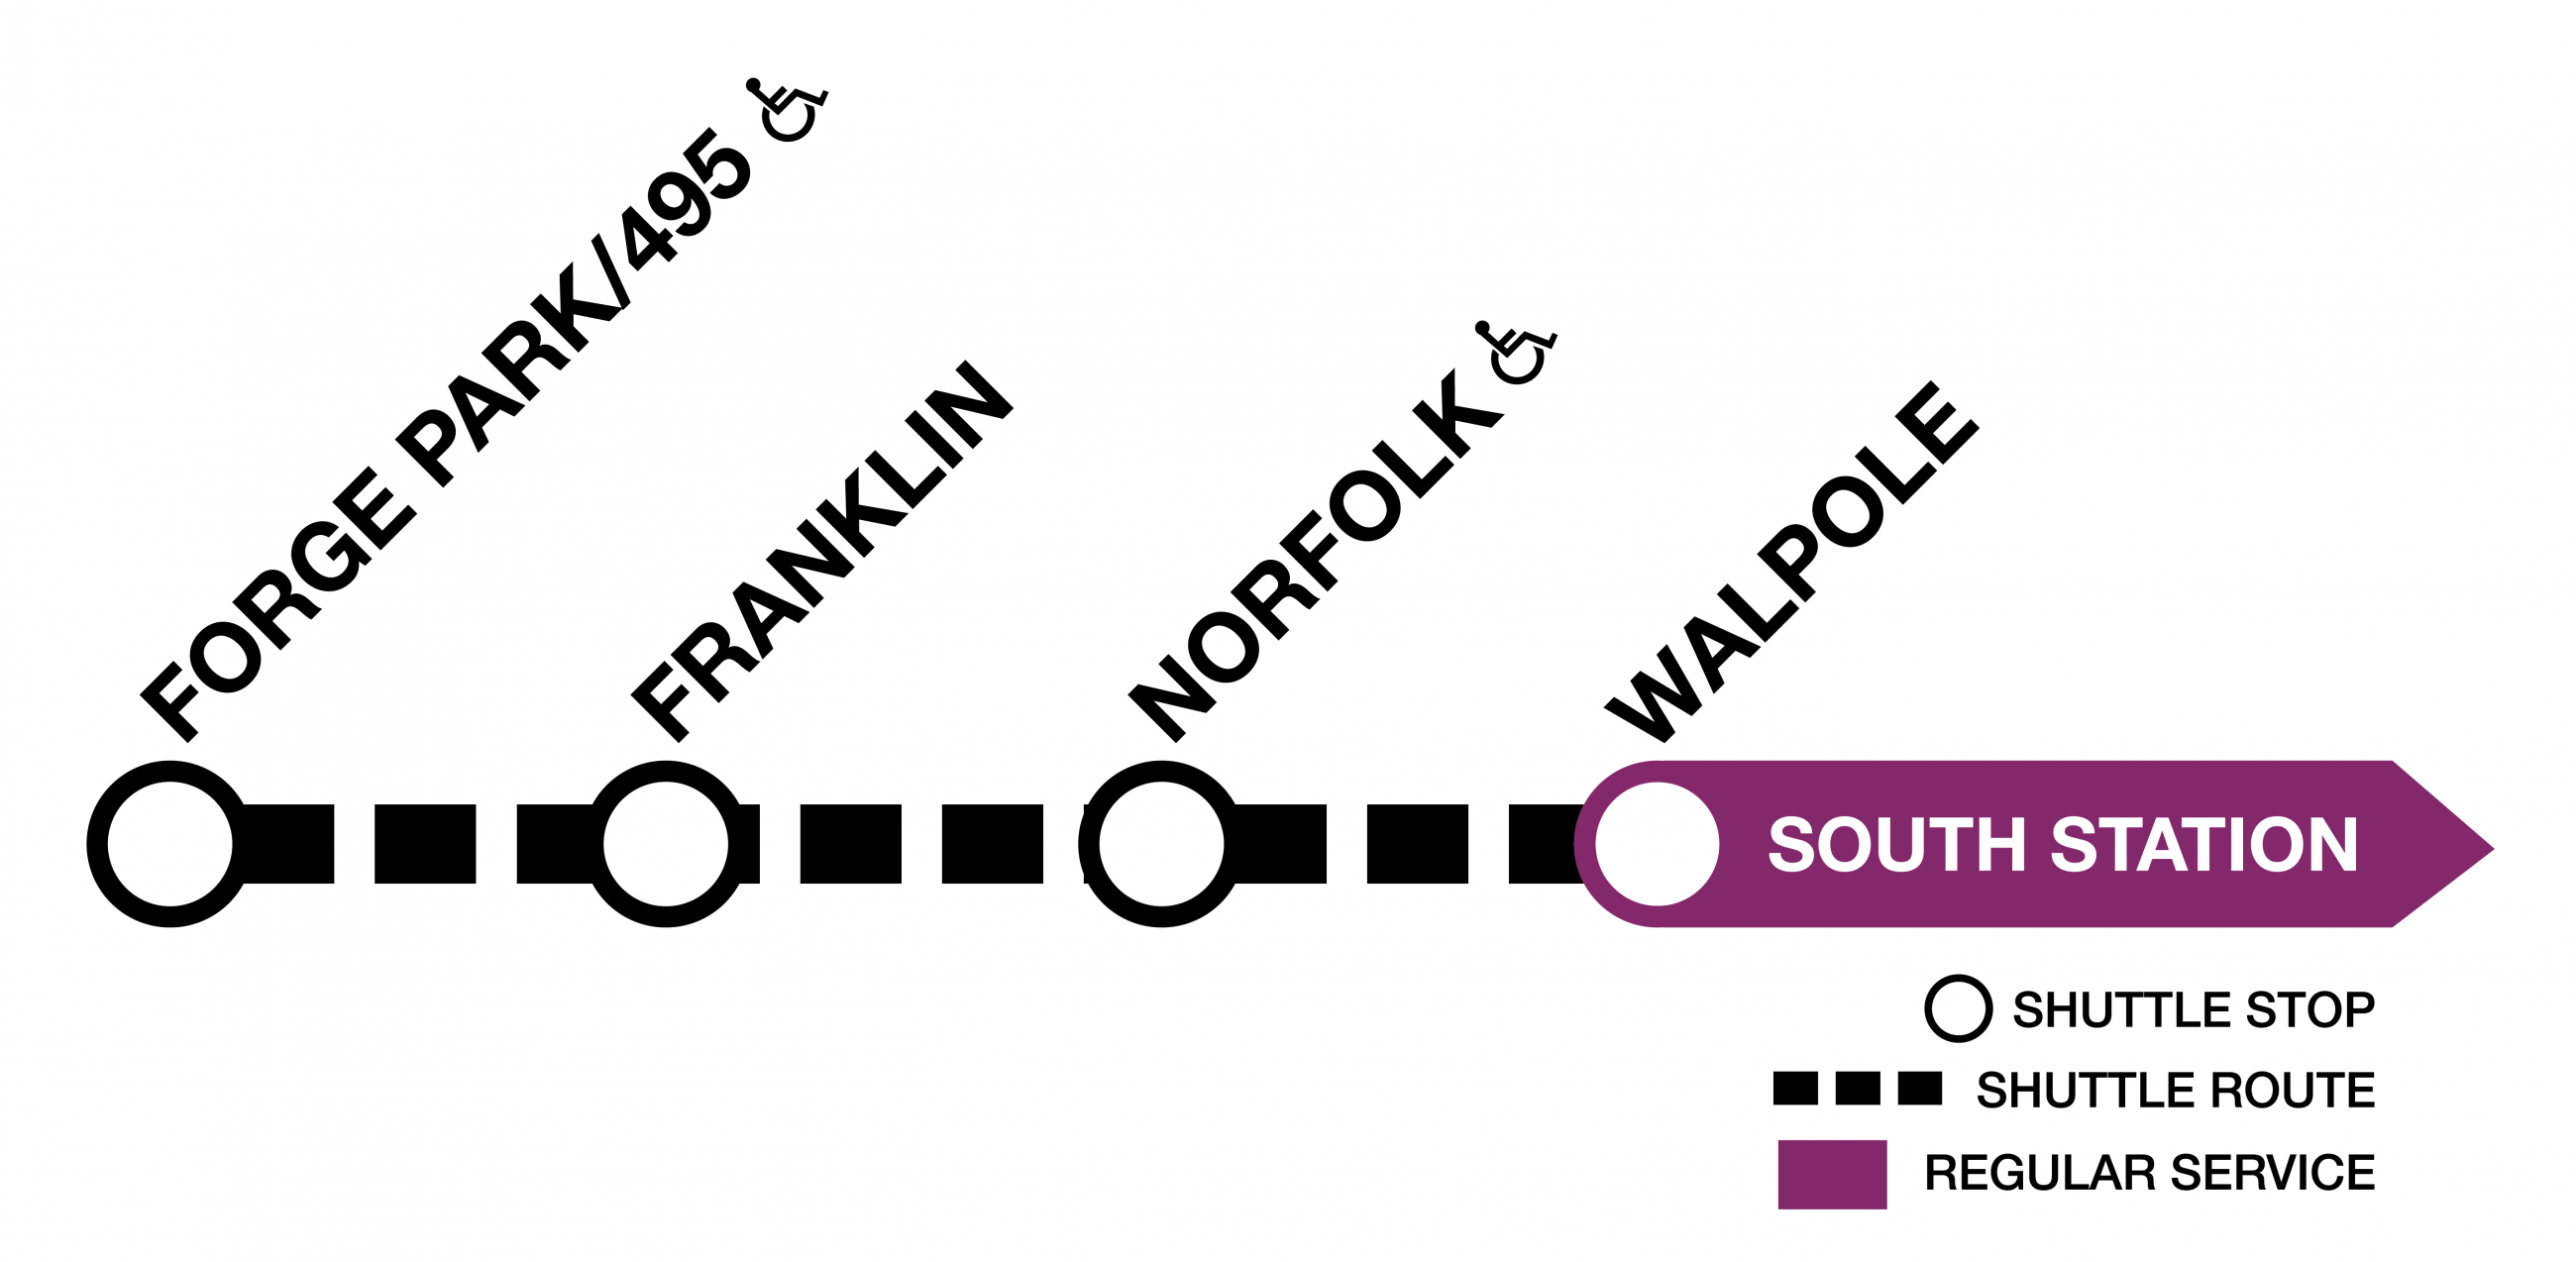 Commuter Rail: Franklin Line - maybe this is the last weekend for shuttle buses